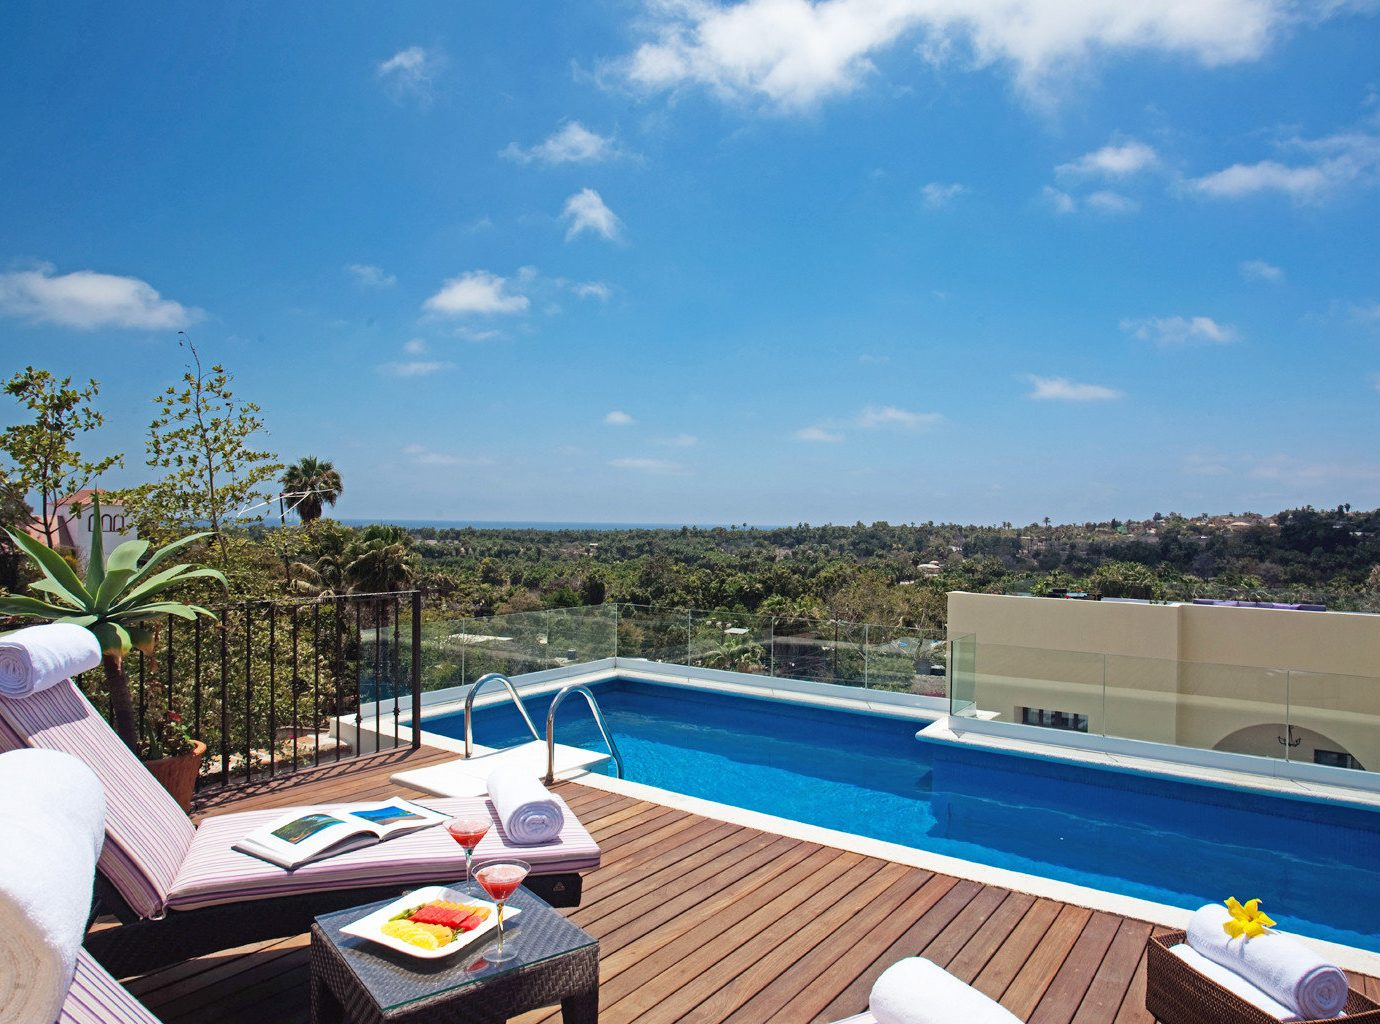 Pool Rooftop Scenic views Trip Ideas sky swimming pool property leisure vacation Resort vehicle Villa estate real estate furniture